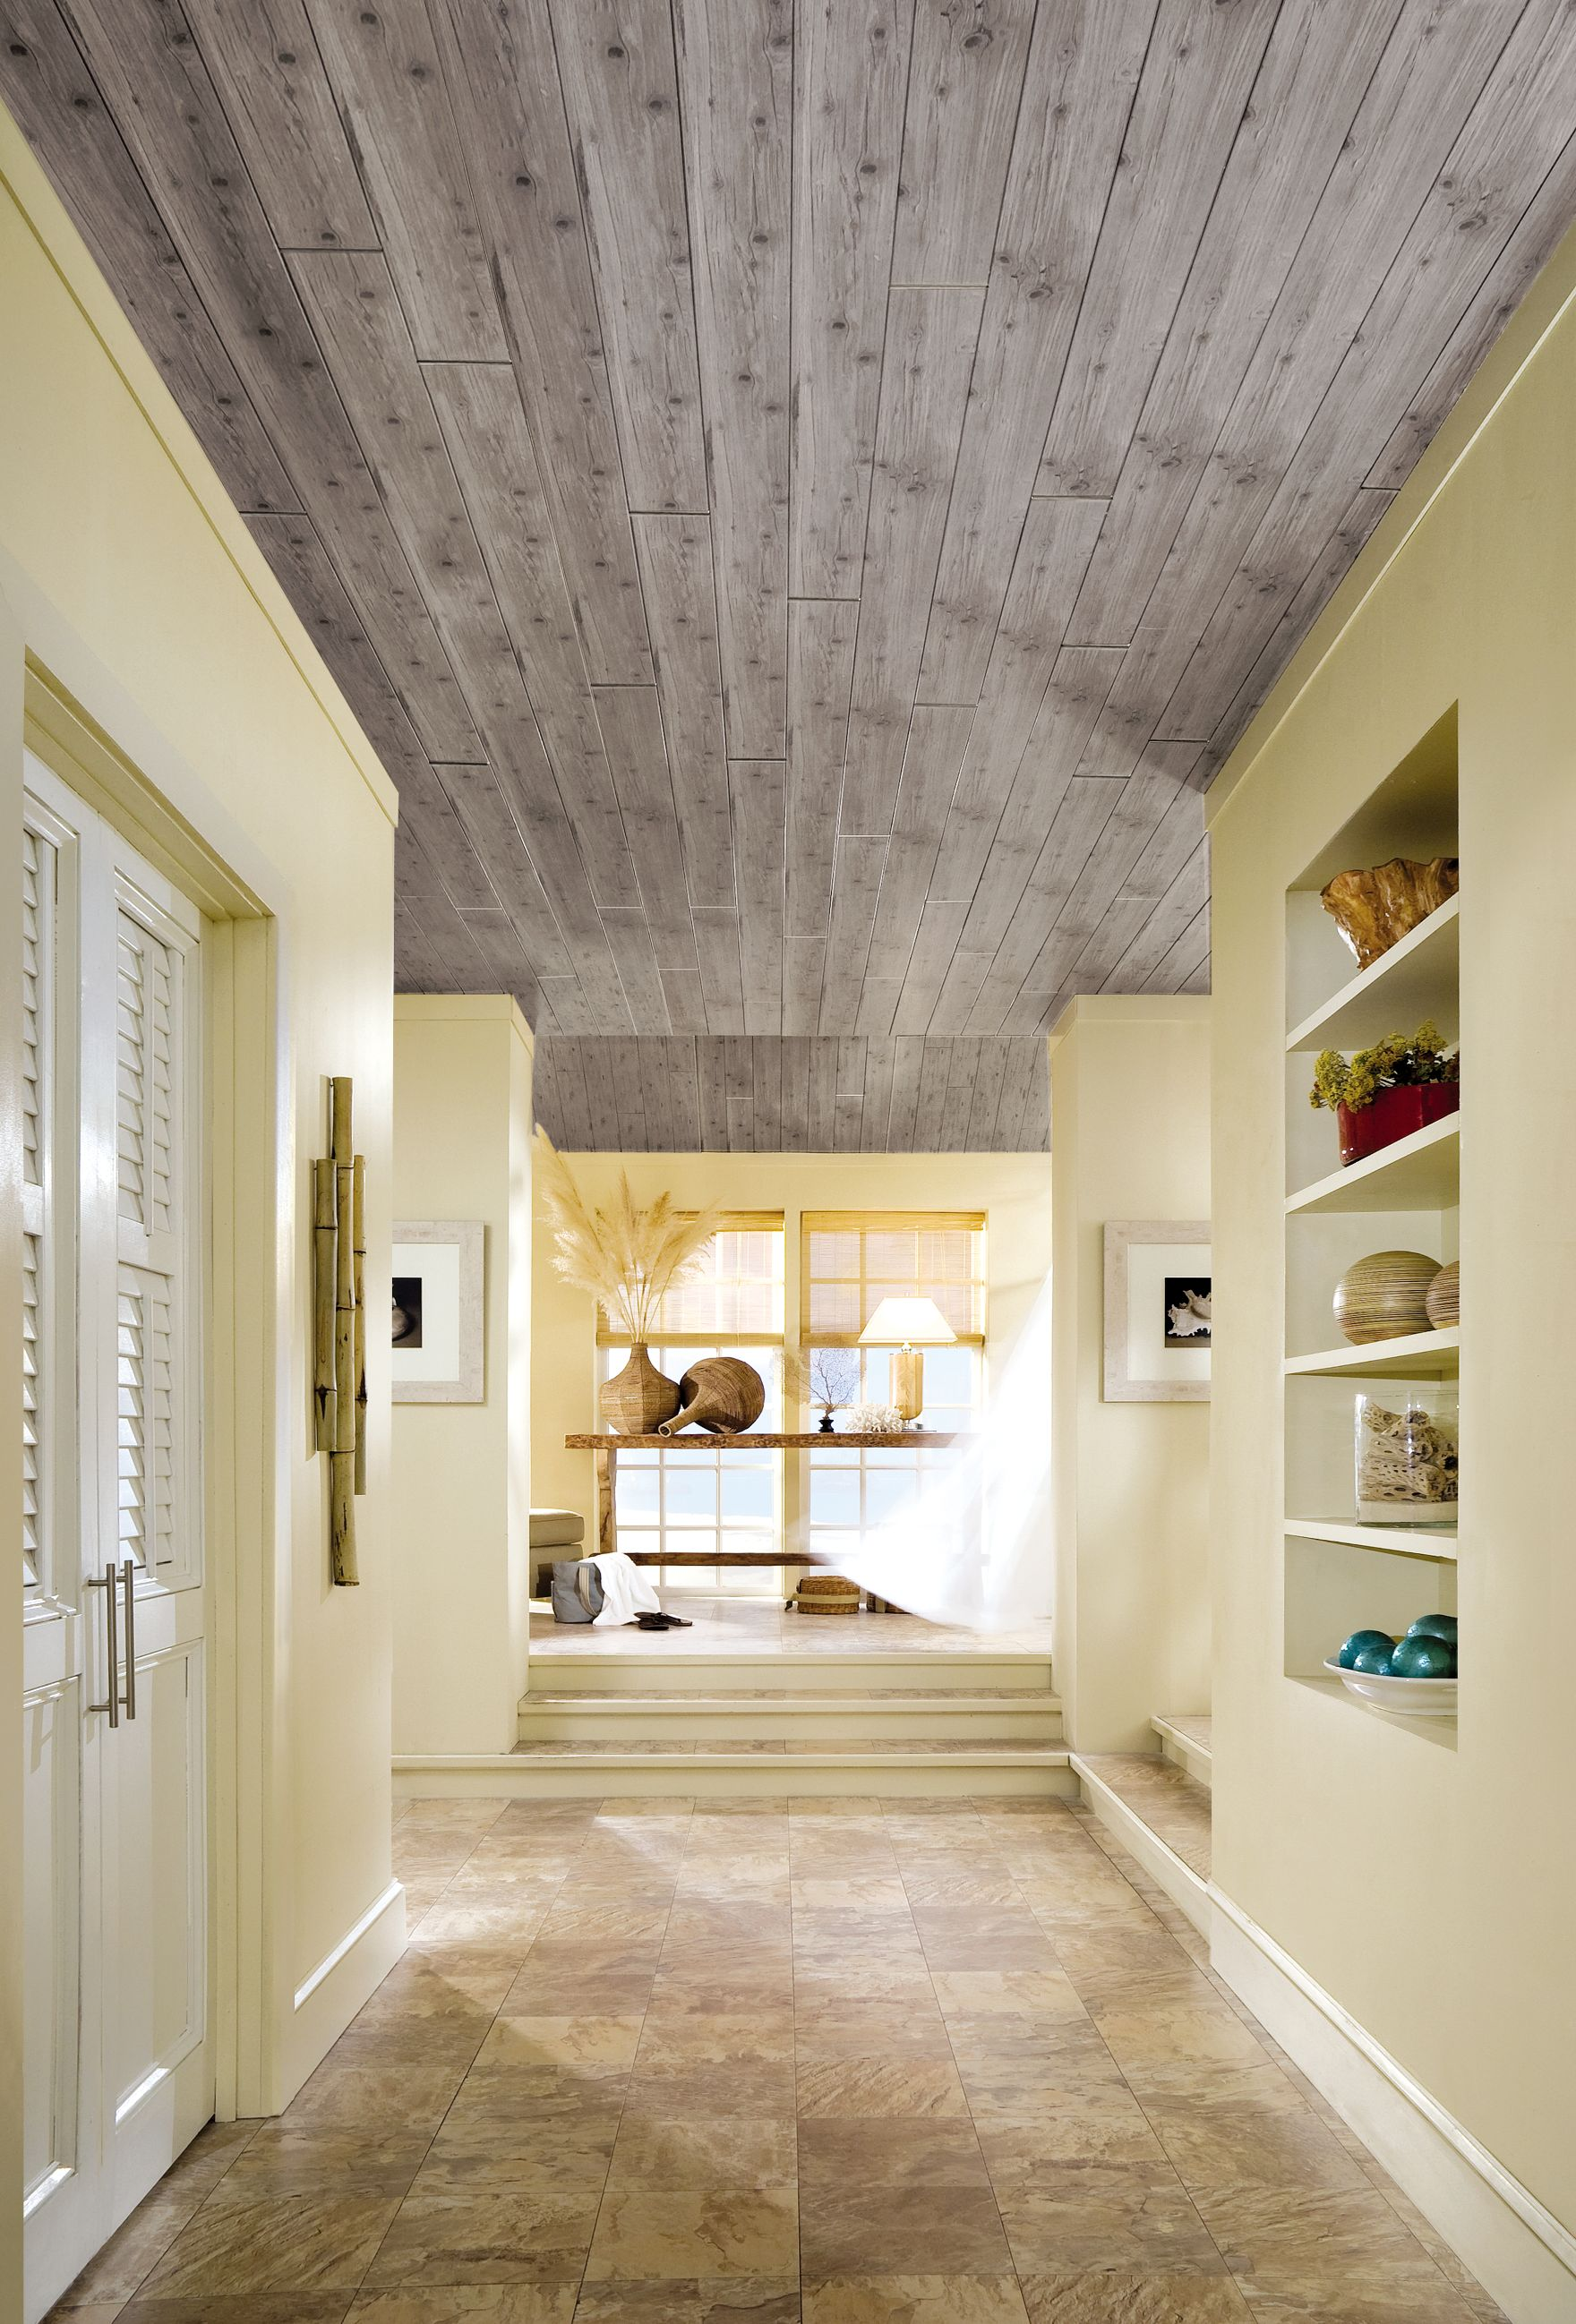 wainscoting squares with Ceilings Dont Have To Be Boring on 4736 additionally Raised Panel Wainscoting Kits Maple Raised Panel Wainscoting Panels also 173599760612422044 also Master Makeover Diy Paneled Wall furthermore BeadBoard Ceilings.